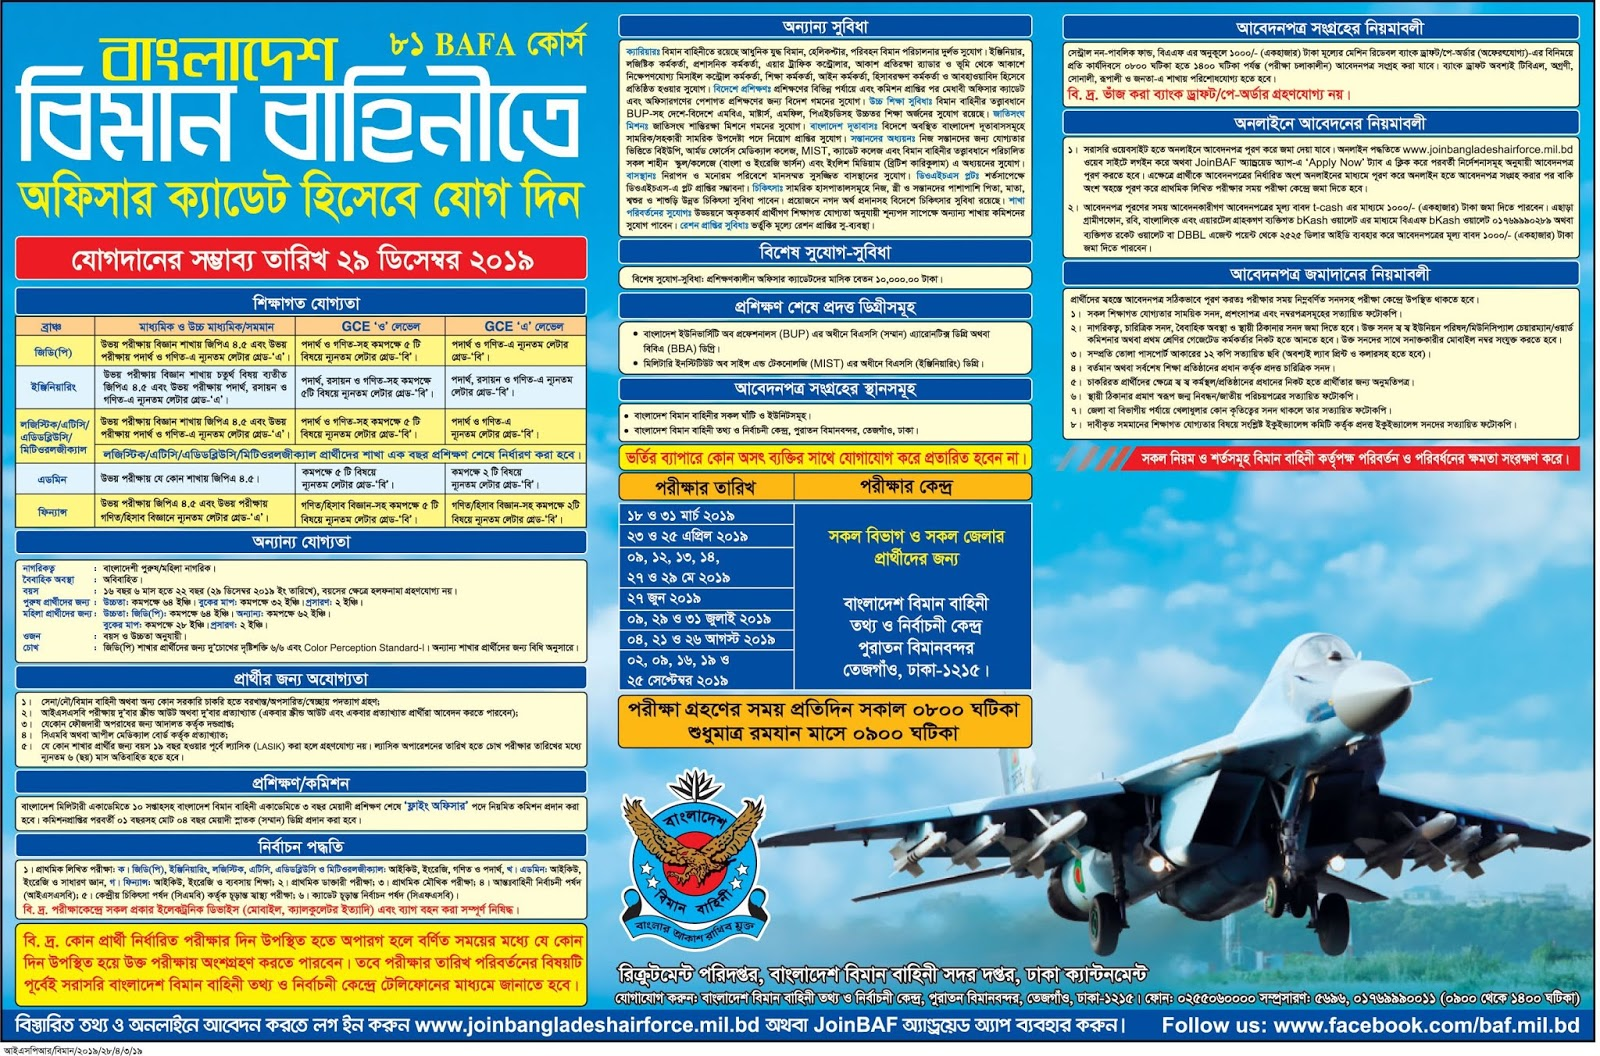 Bangladesh Air Force BAFA-81 Flight Cadet Recruitment Circular 2019